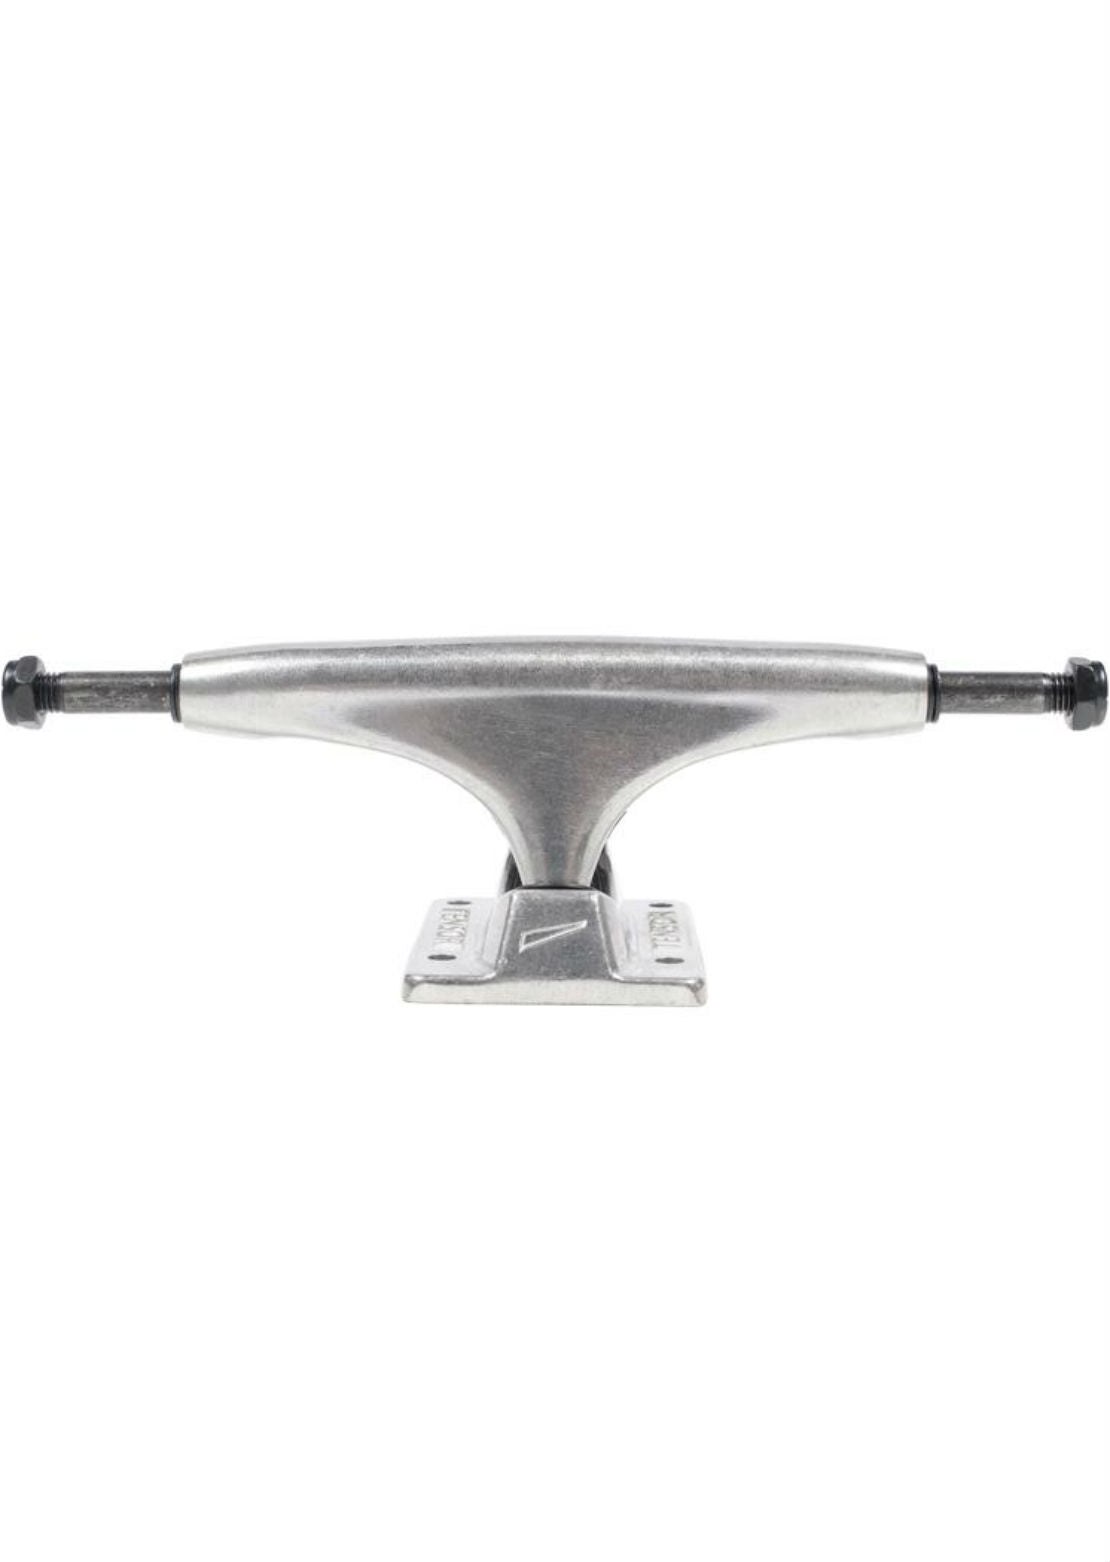 Tensor Alloys Skateboard Trucks - 5.0